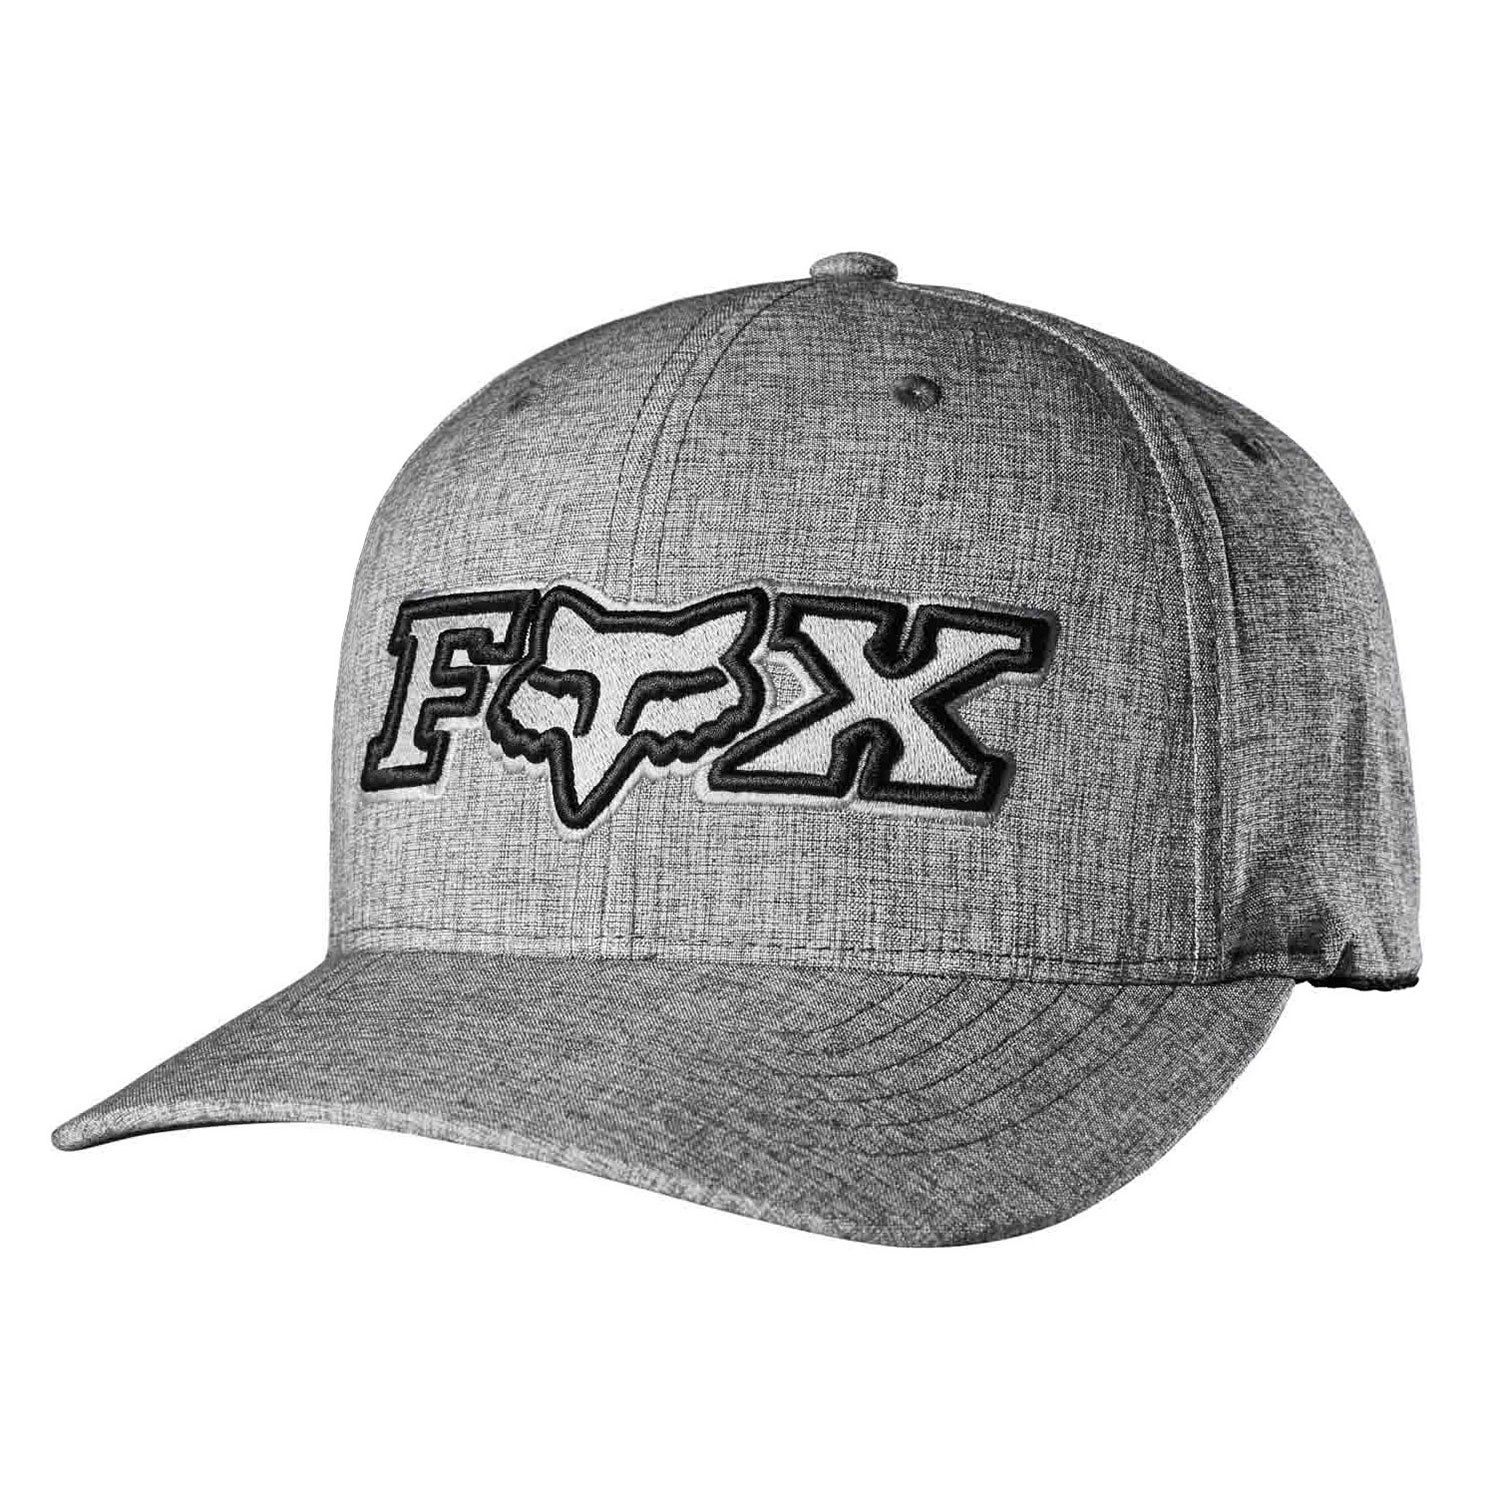 Kšiltovka Fox Kincayde Flexfit heather grey